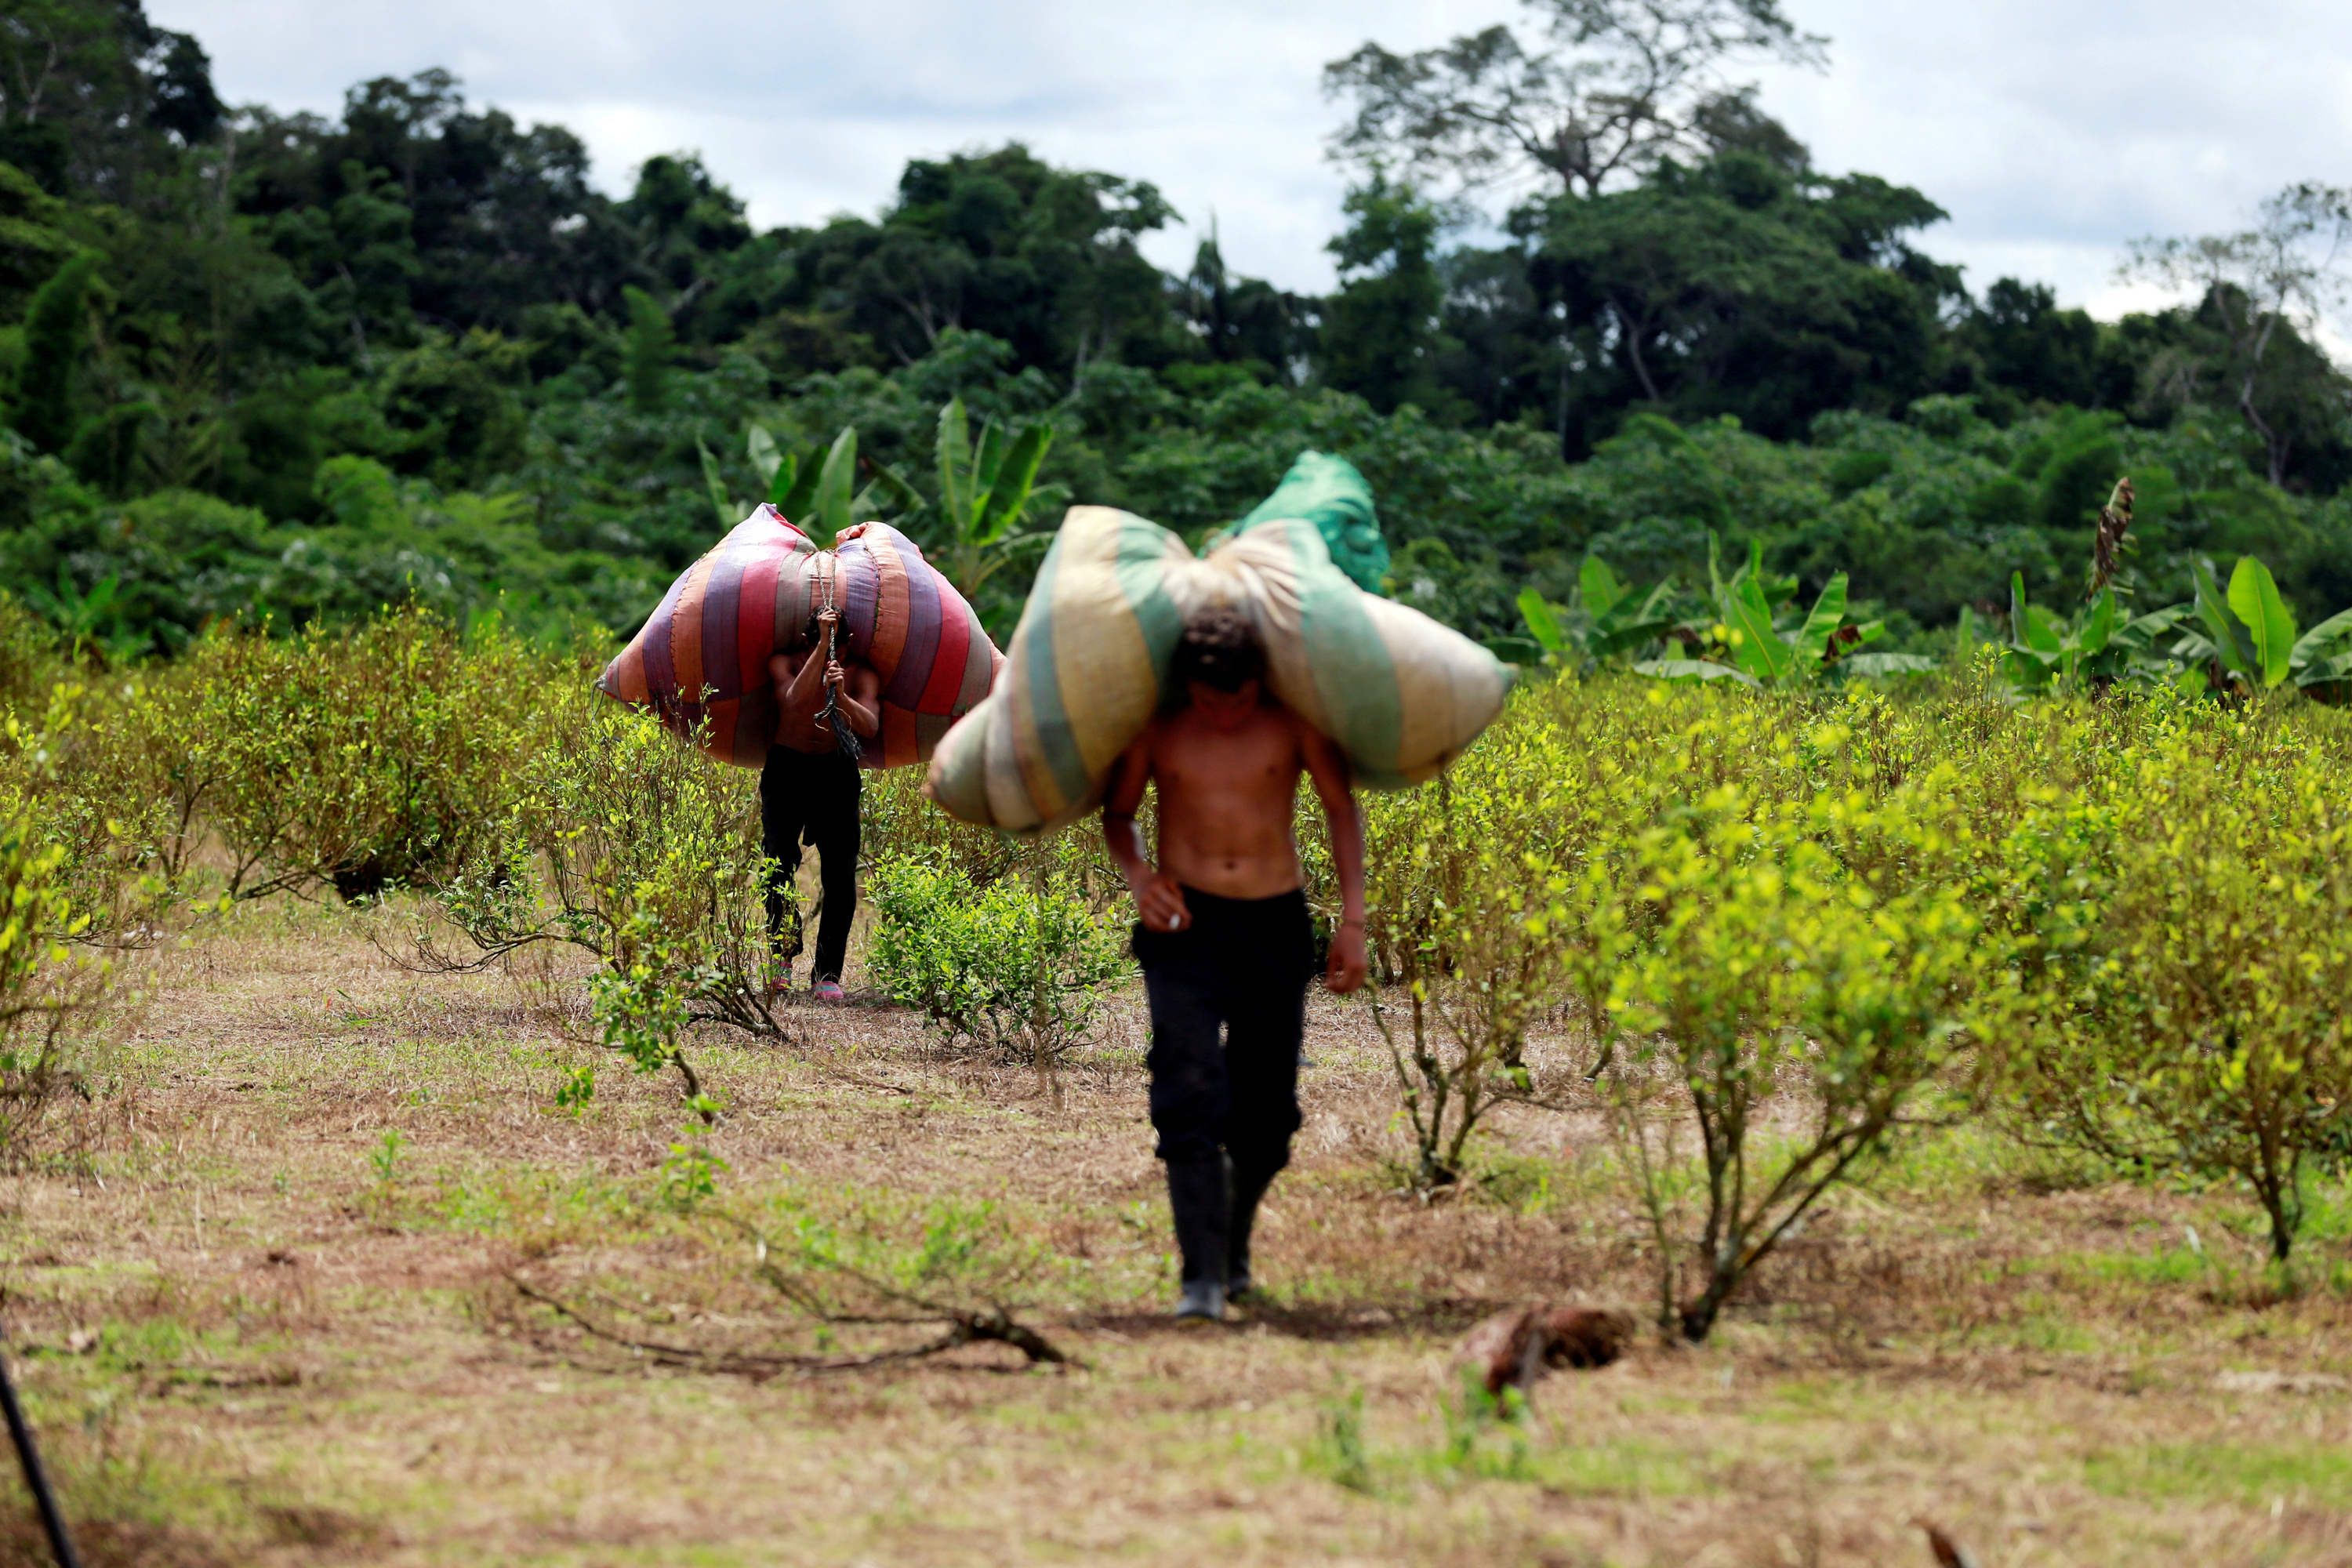 """Workers who collect coca leaves, known locally as """"raspachines,"""" carry bags with harvested leaves to be processed into coca paste, on a coca farm in Guayabero, Guaviare province, Colombia, May 23, 2016."""